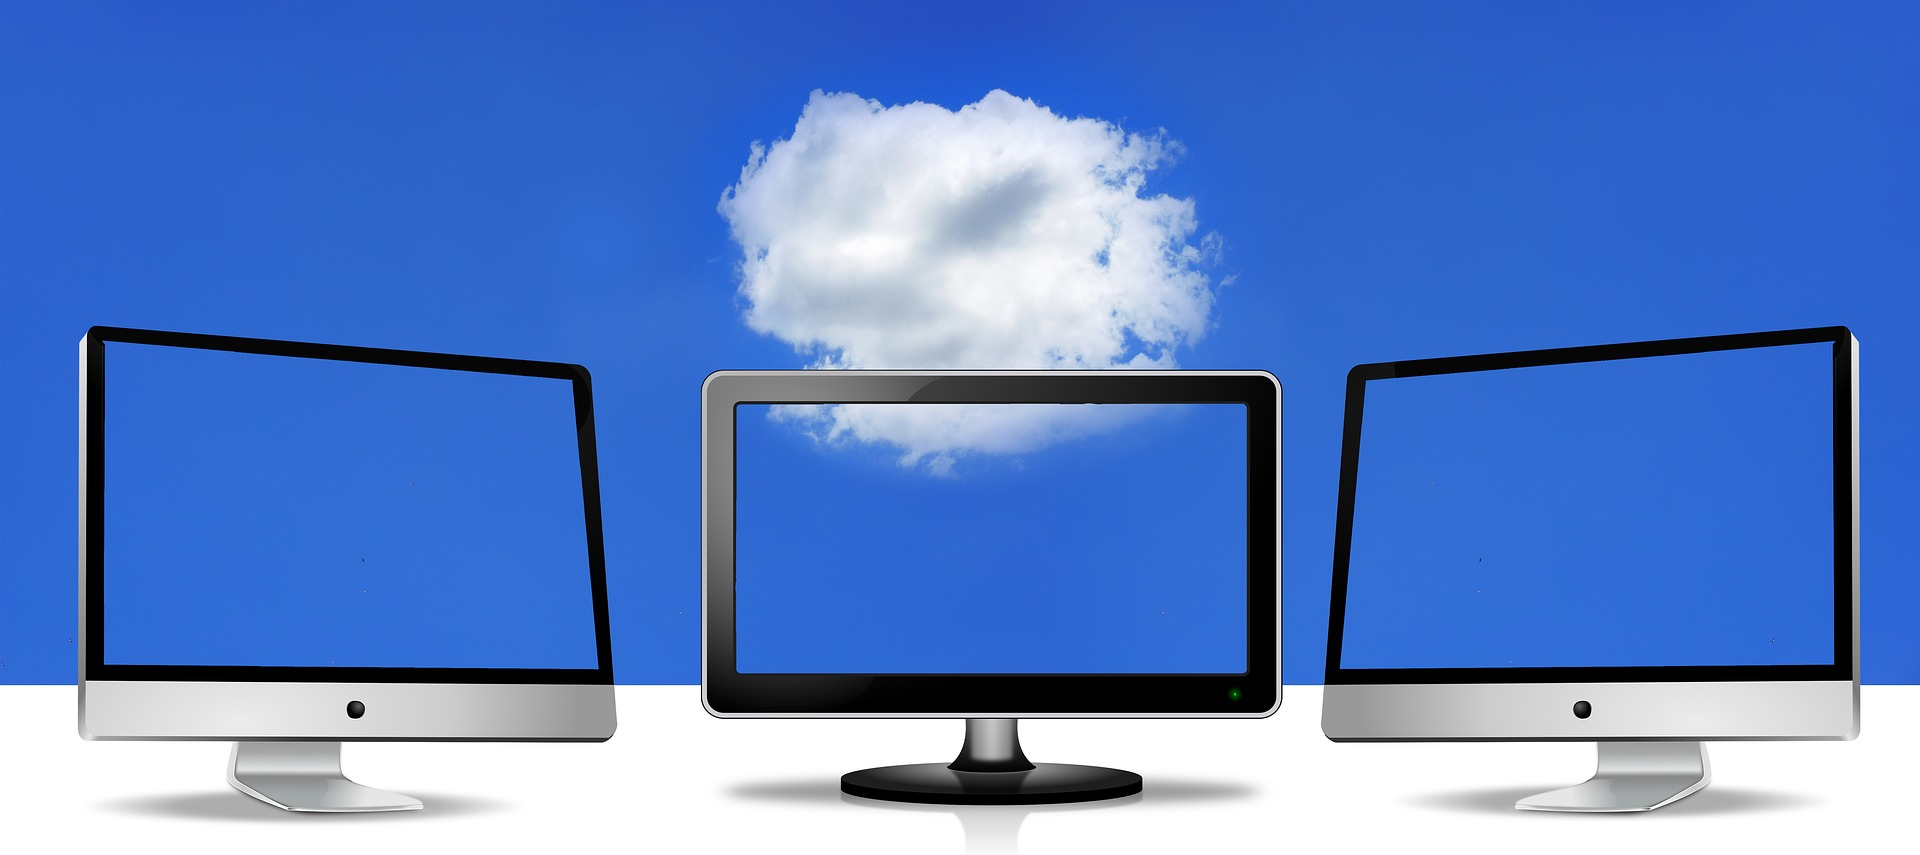 Hosting is improving business agility